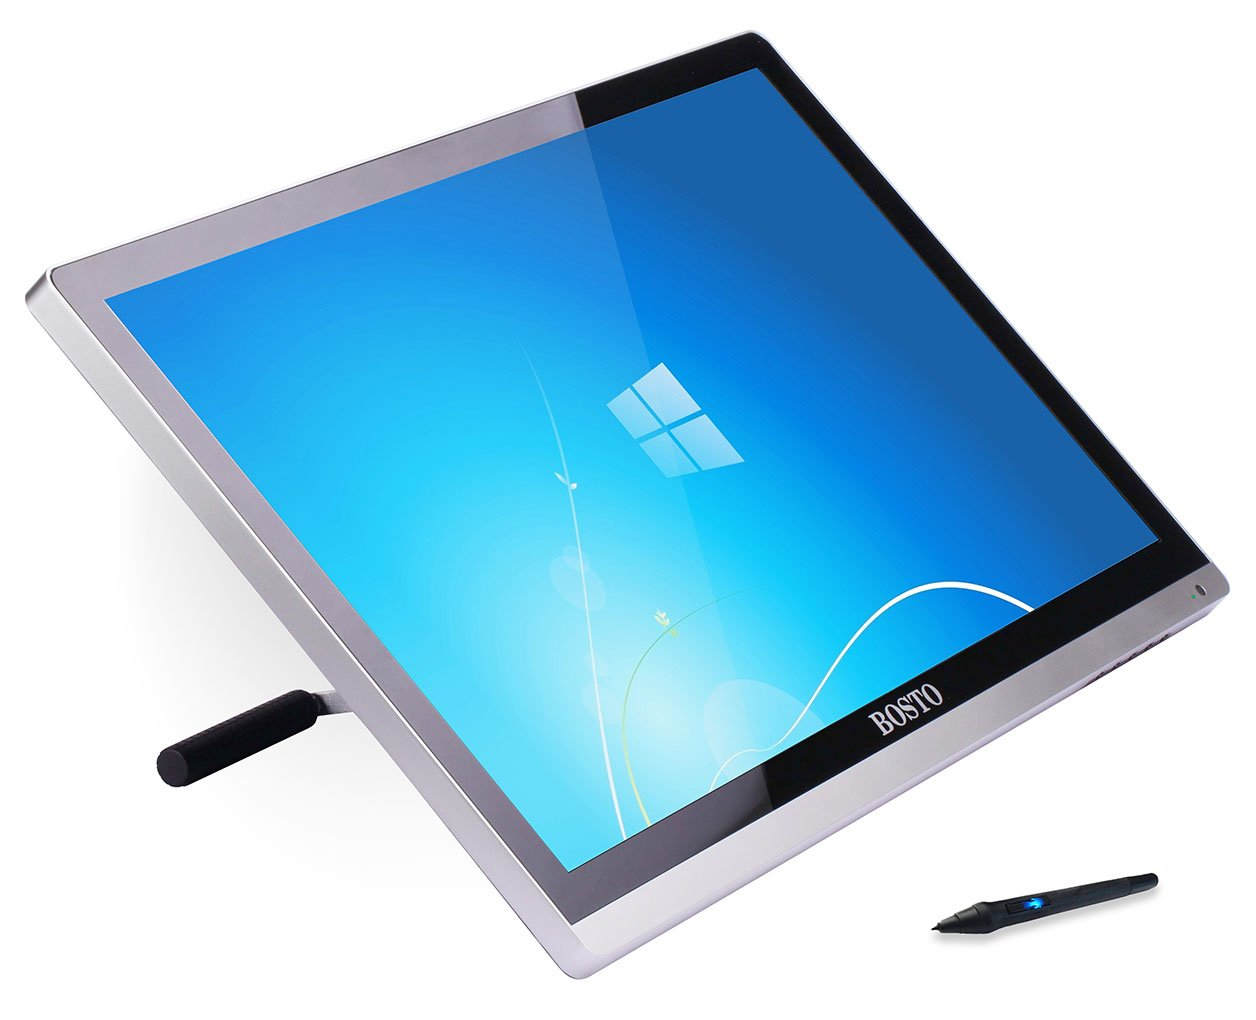 Drawing Lines With Tablet : Bosto kingtee u mini pen display tablet hardware review